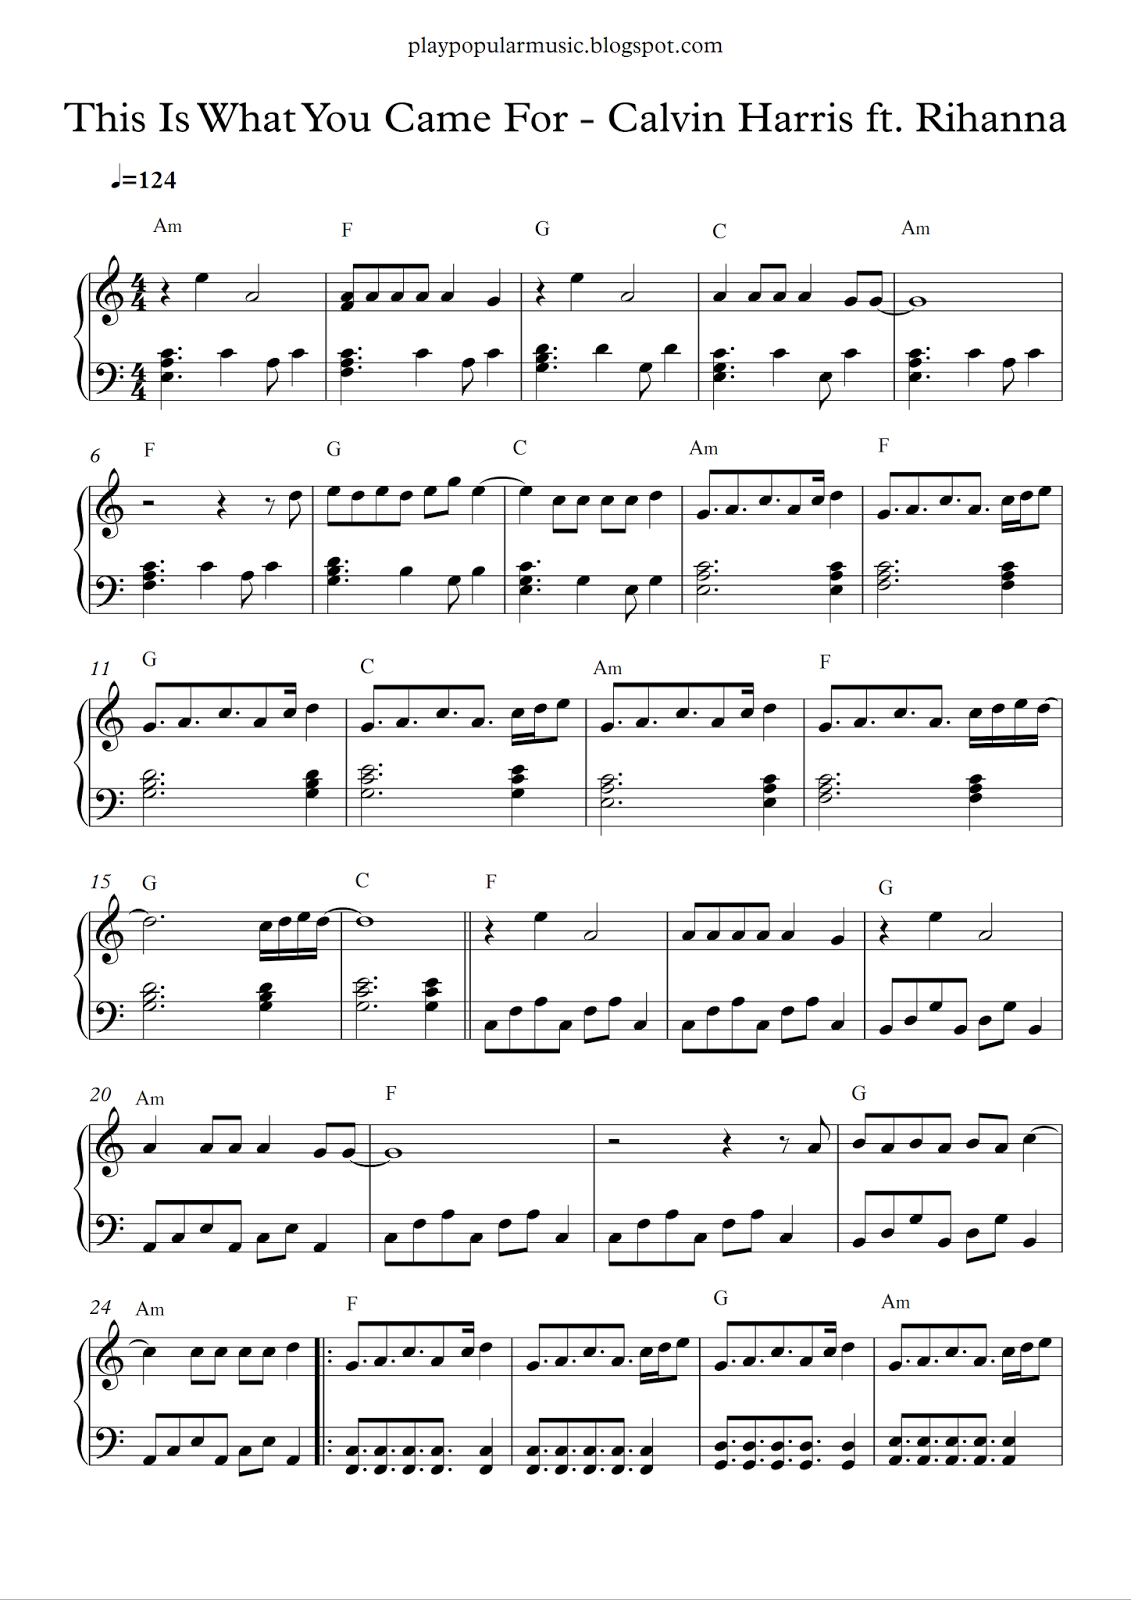 Free piano sheet music: This Is What You Came For - Calvin Harris ft